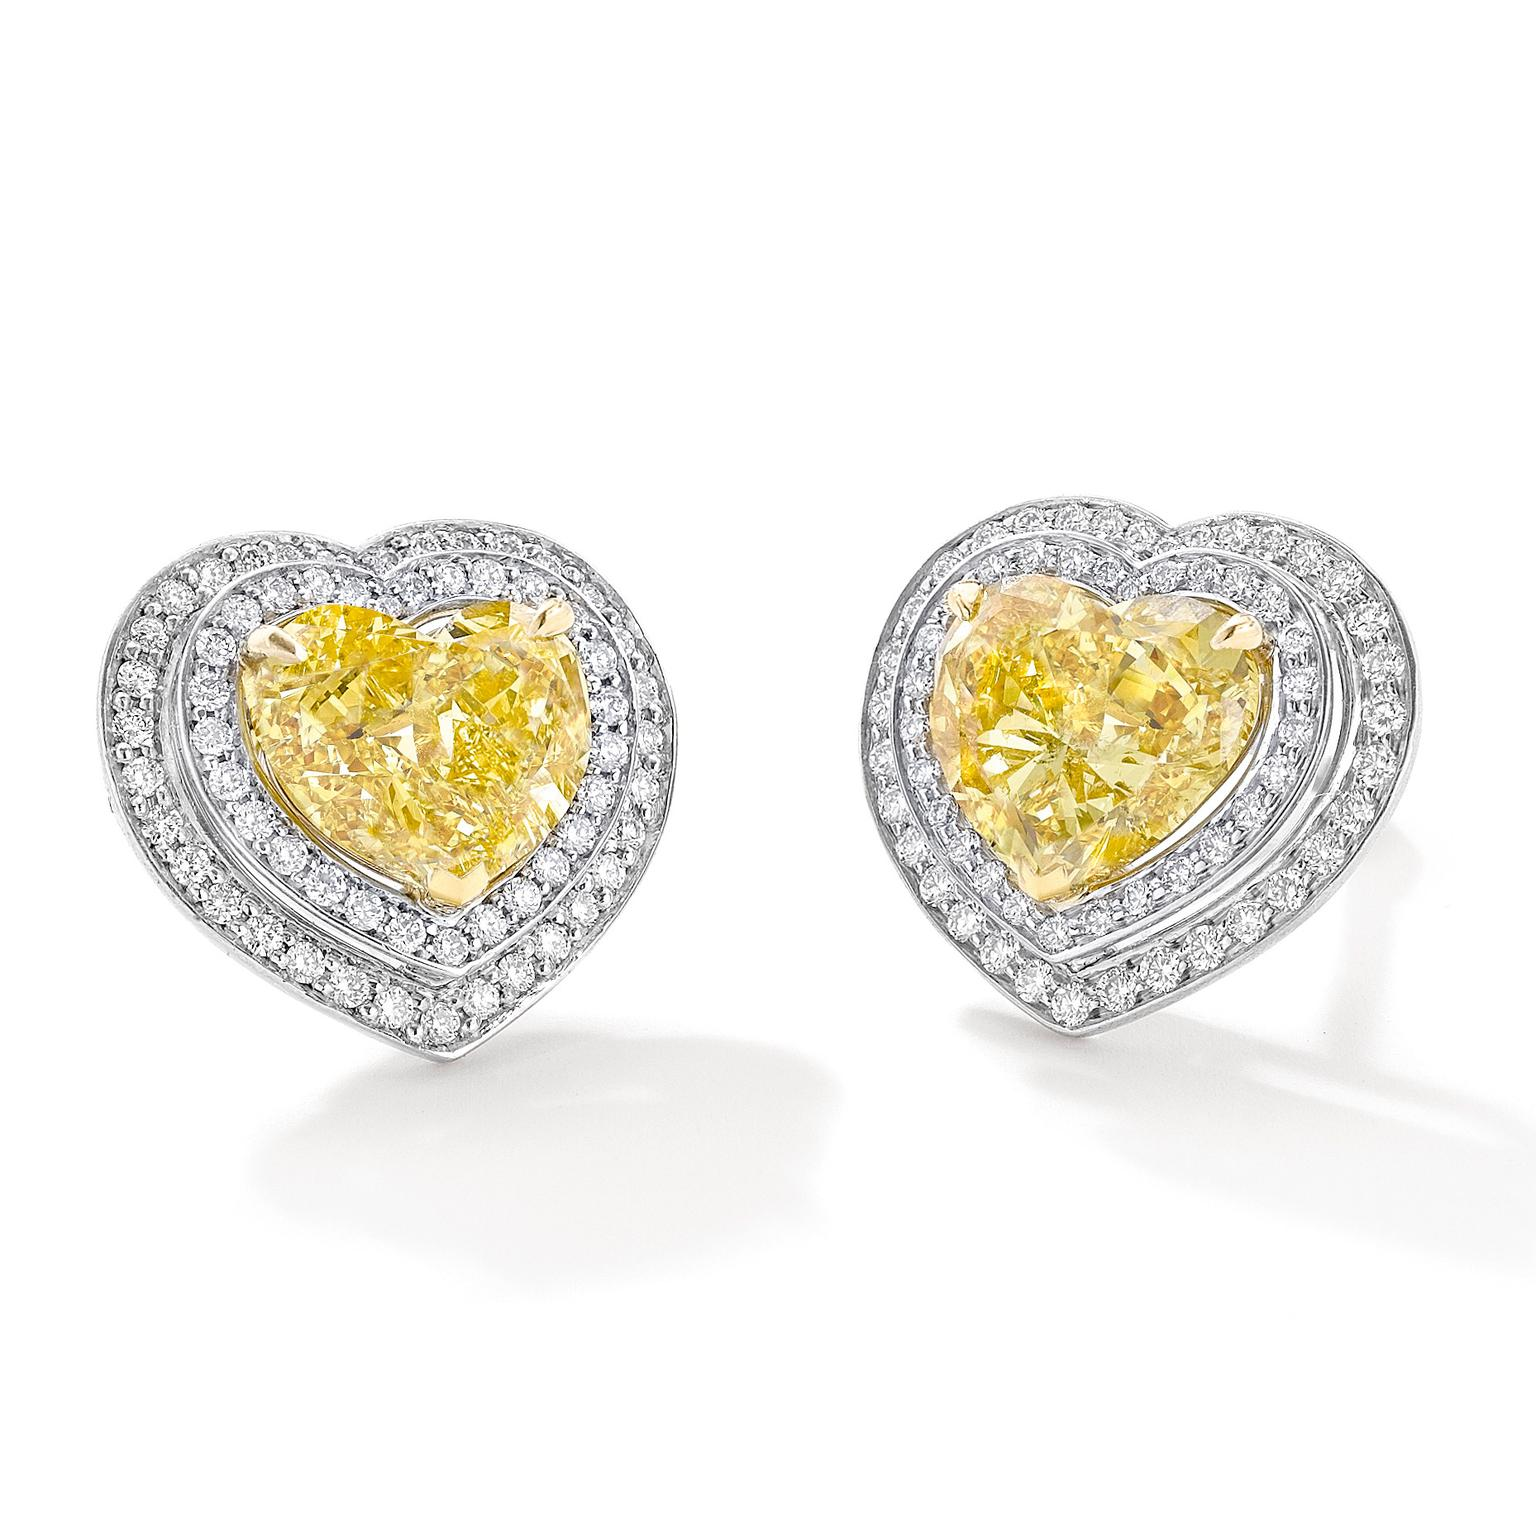 Boodles Double Vintage yellow diamond heart earrings